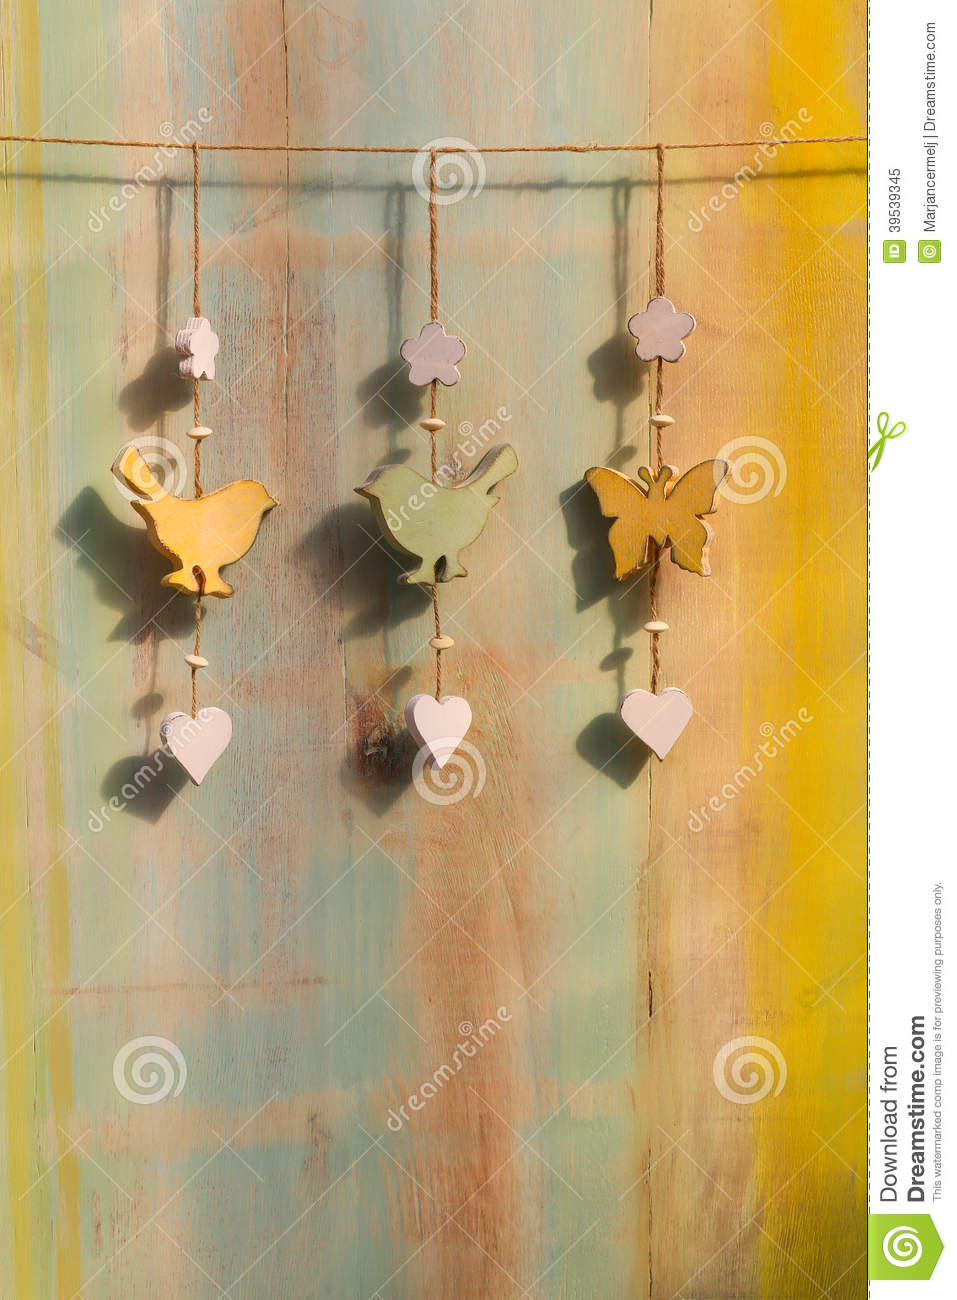 Hanging Decor Wood On String Bird Butterfly Stock Photo - Image ...